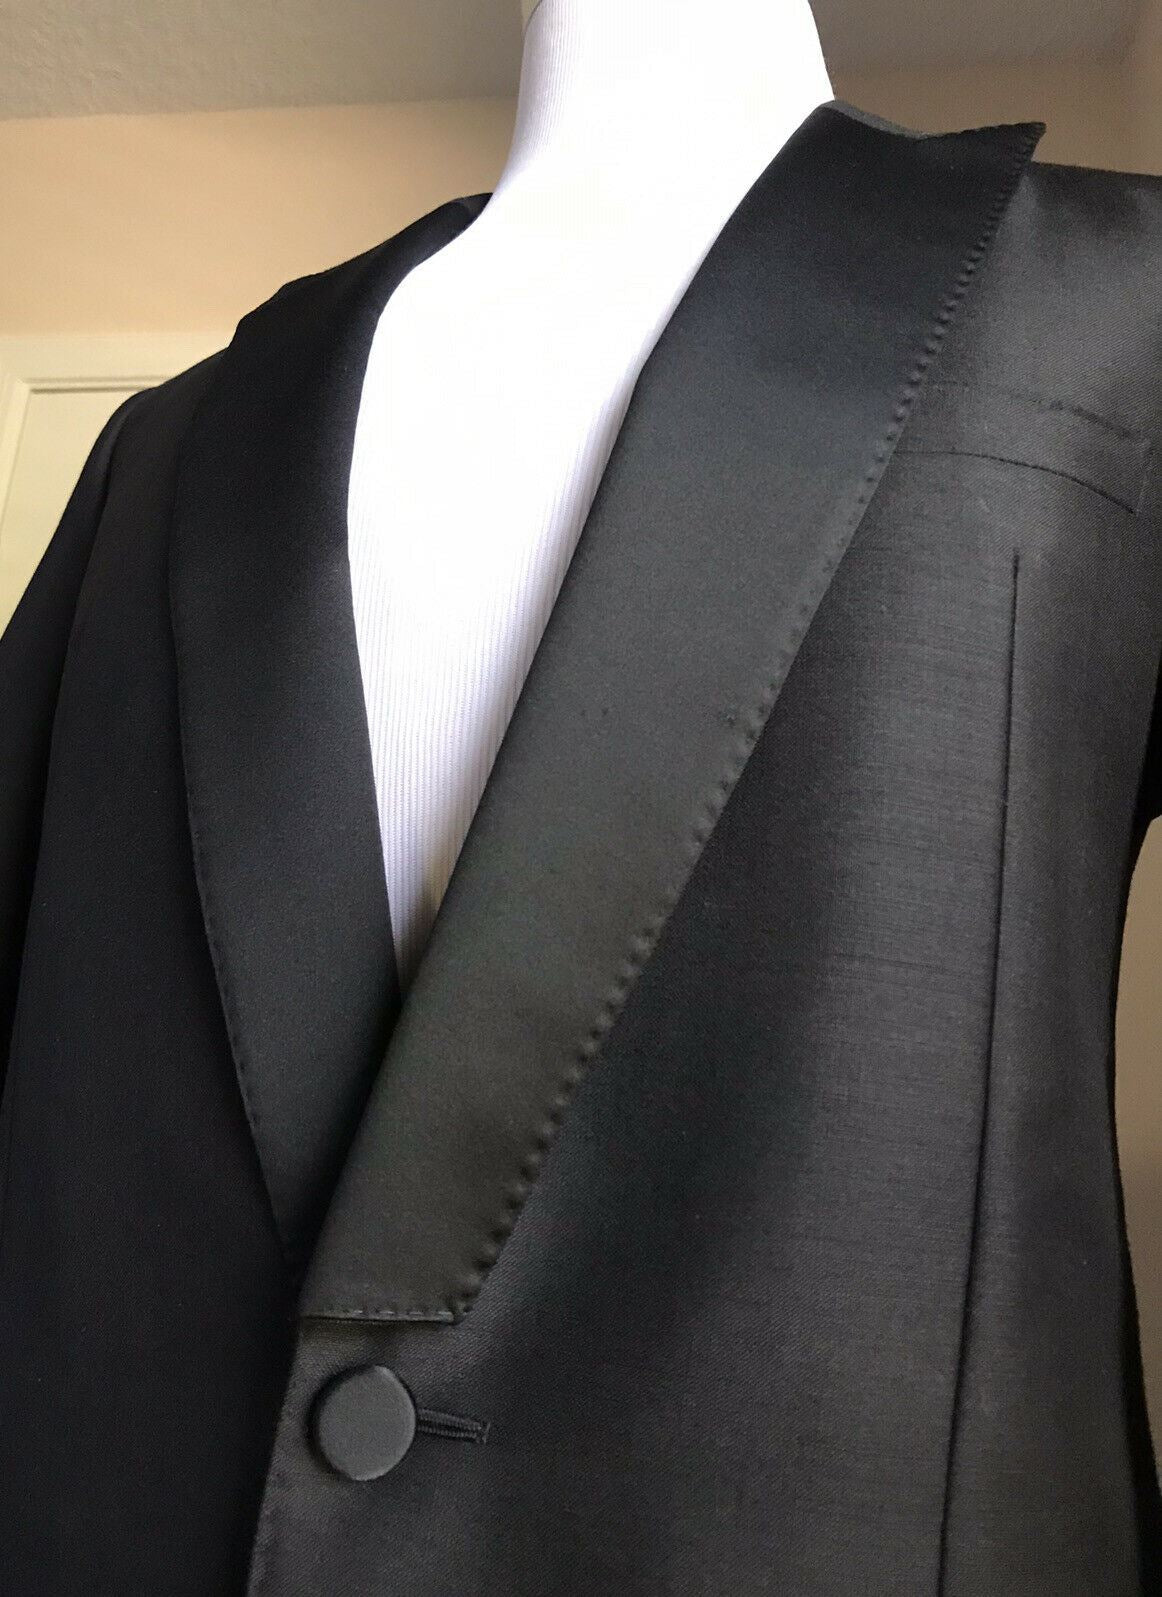 NWT $3250 Valentino Men Tuxedo Sport Coat Blazer Black 38R US (48R Eu) Italy